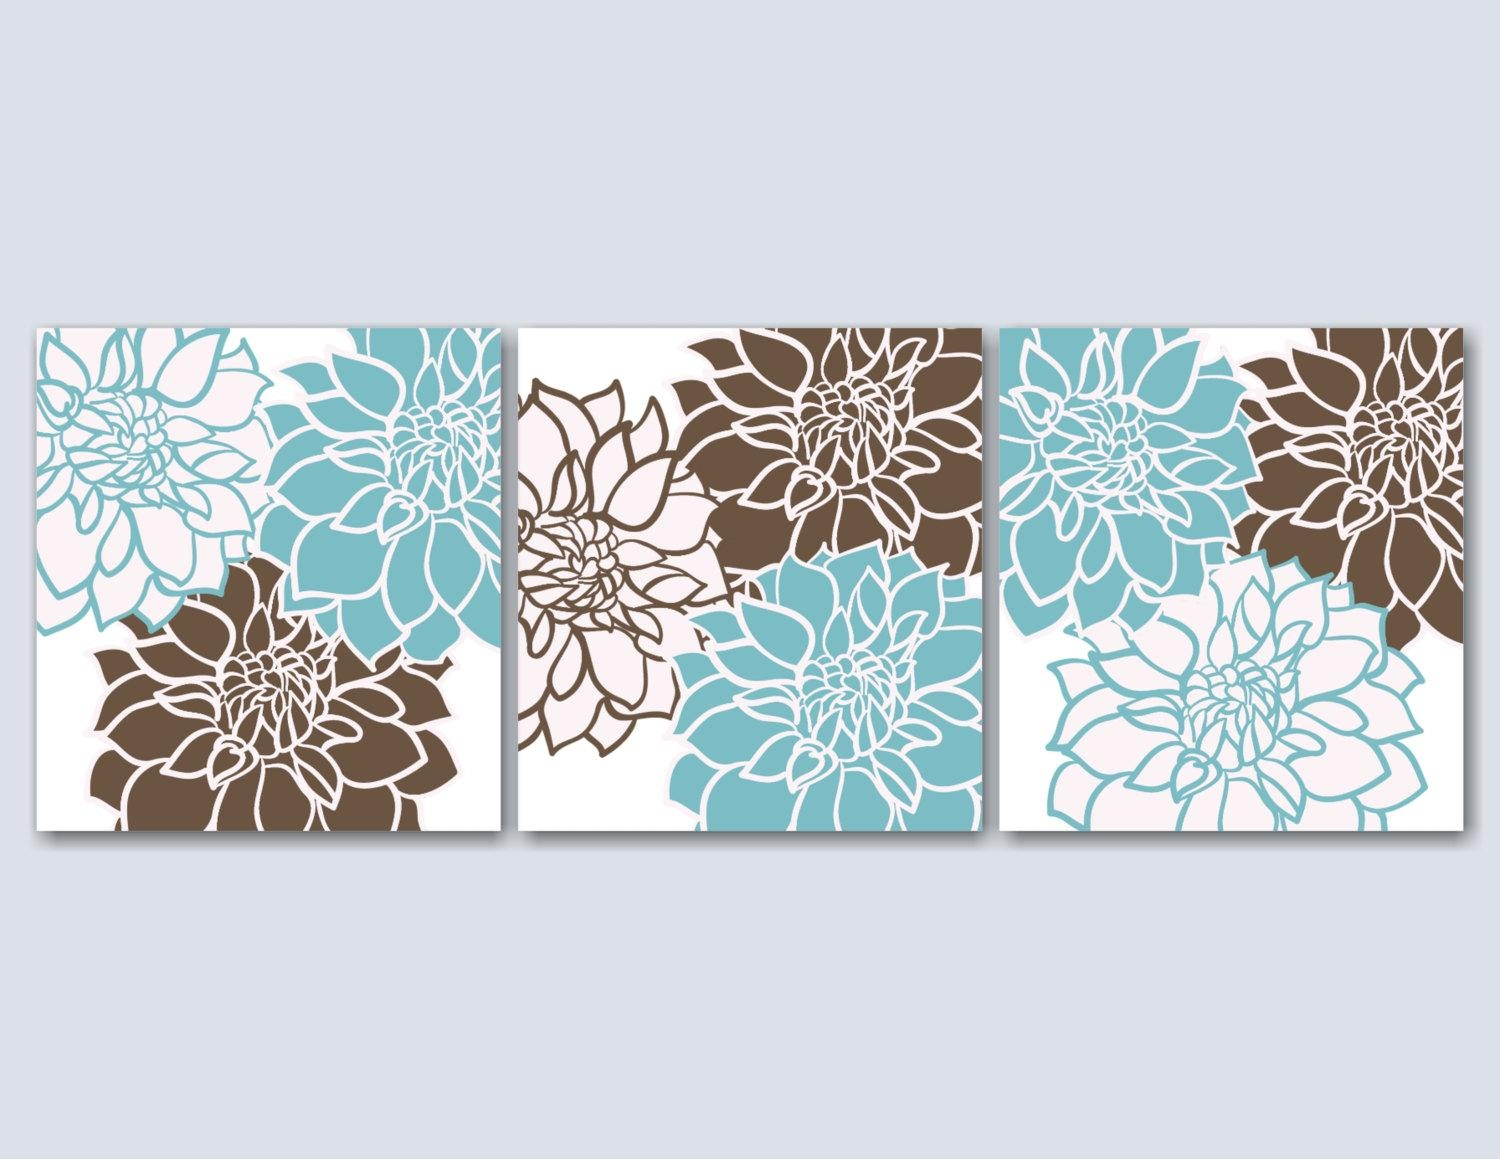 Teal Brown Bedroom Wall Artblue Brown Floral Wall Artbrown Throughout Turquoise And Brown Wall Art (Image 17 of 20)